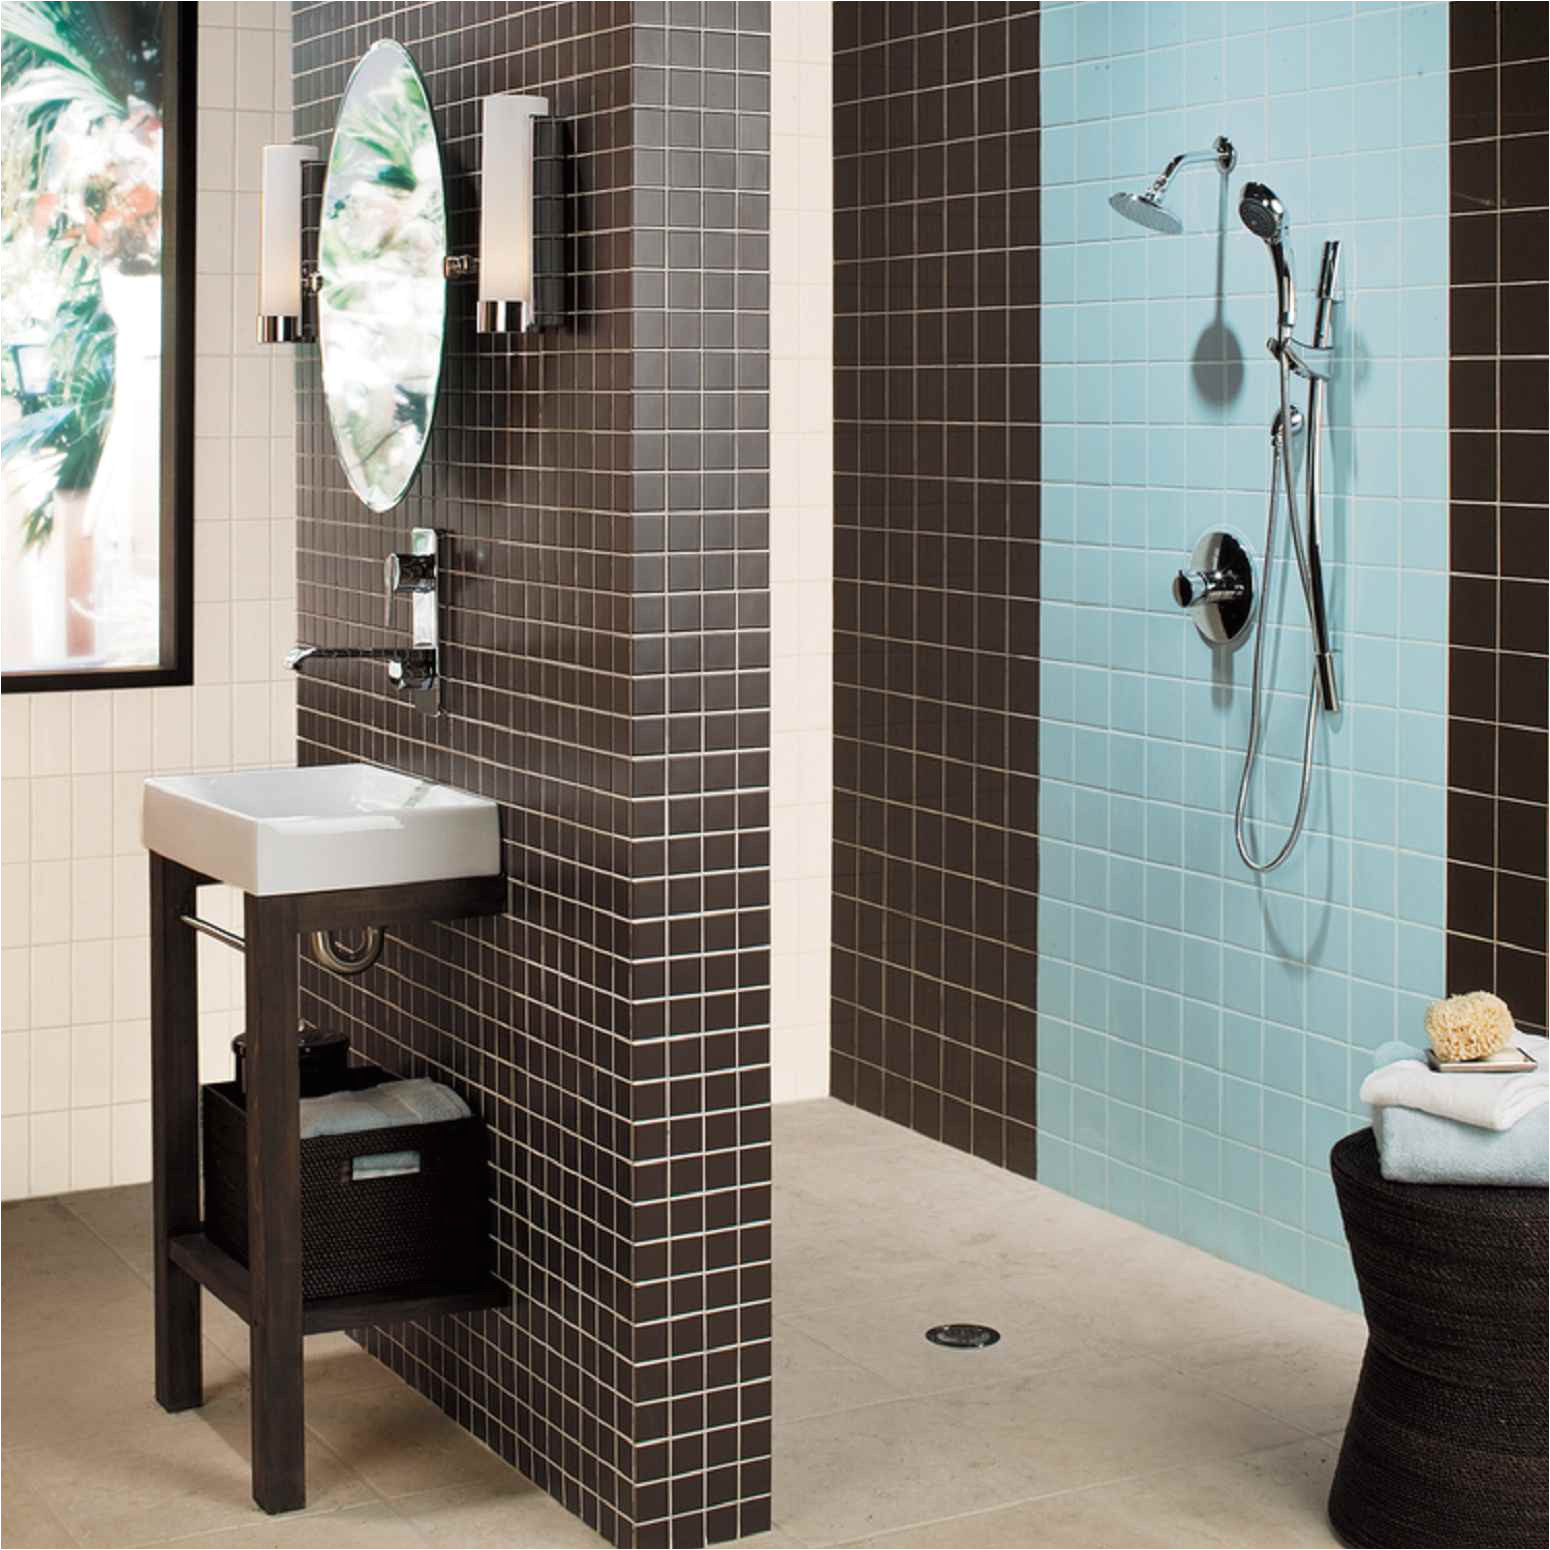 tile gallery american olean matte glacier and french roast shower 1550 x 1550 57e9593a5f9b586c3593d097 jpg